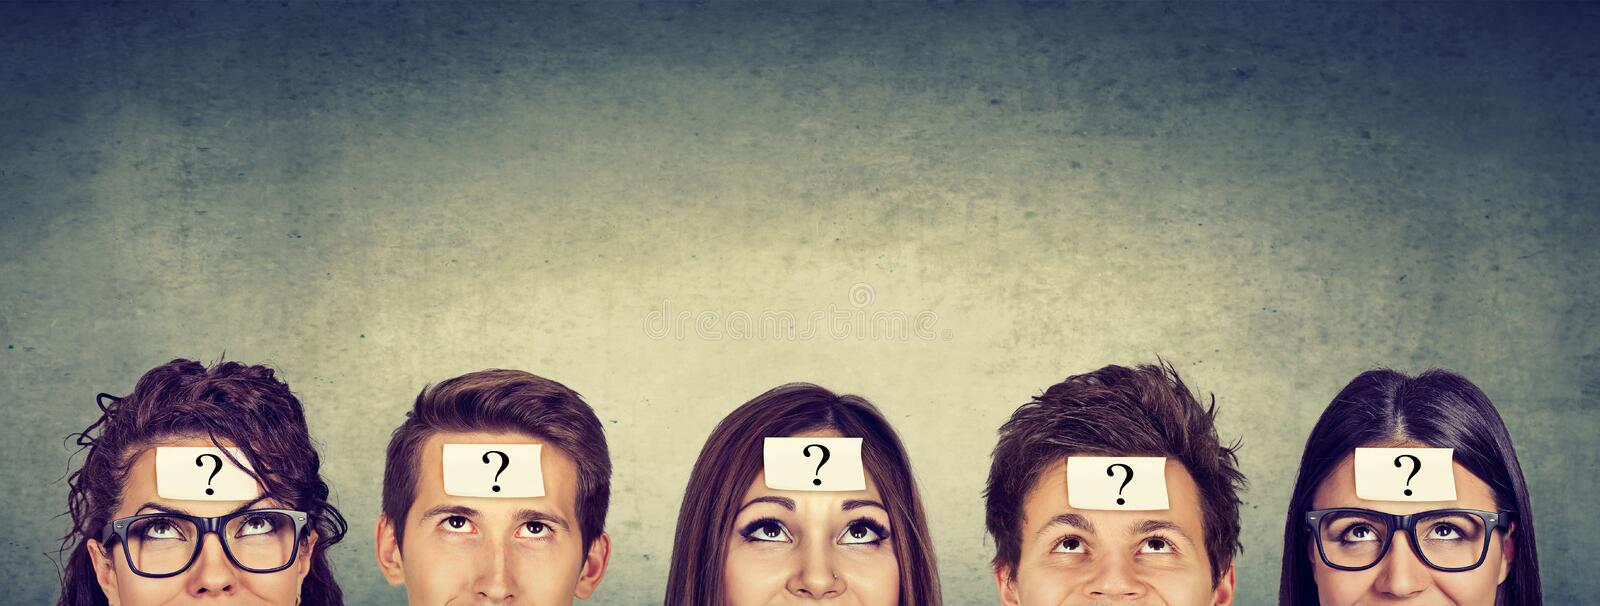 Group of thinking people with question mark looking up stock image